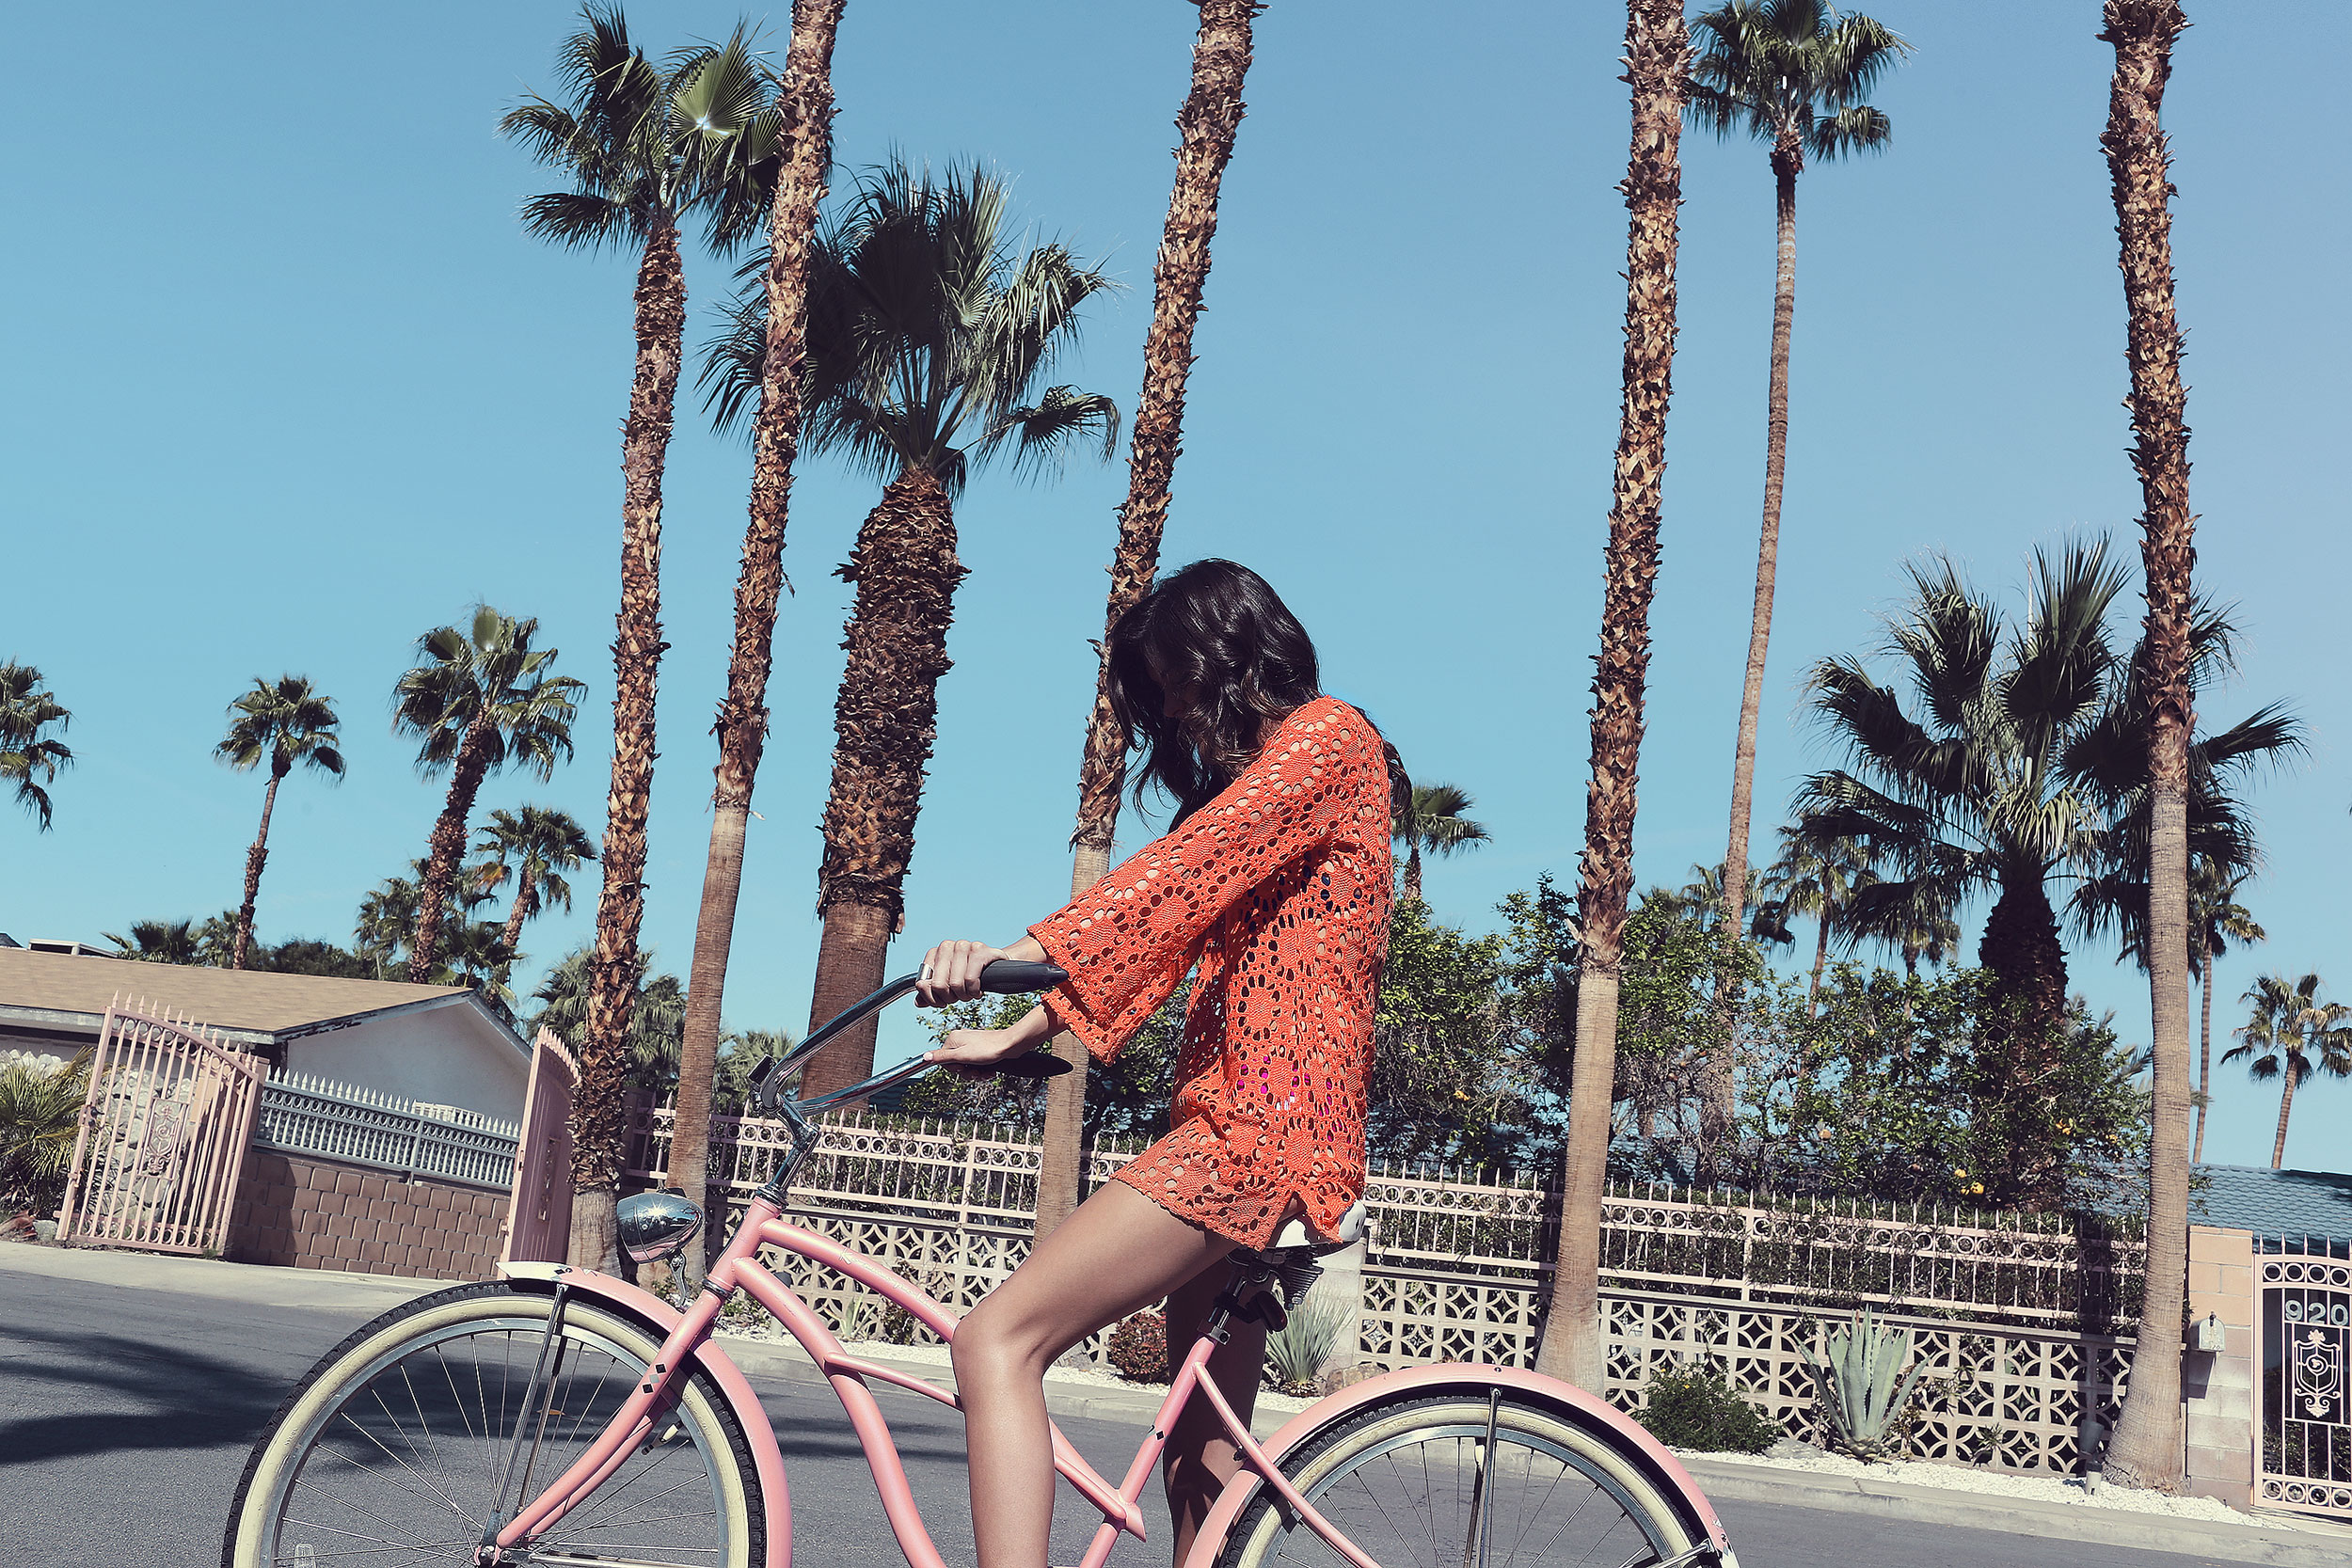 Brunette on a pink beach cruiser wearing an orange coverup - Kim Genevieve Los Angeles Lifestyle Photographer